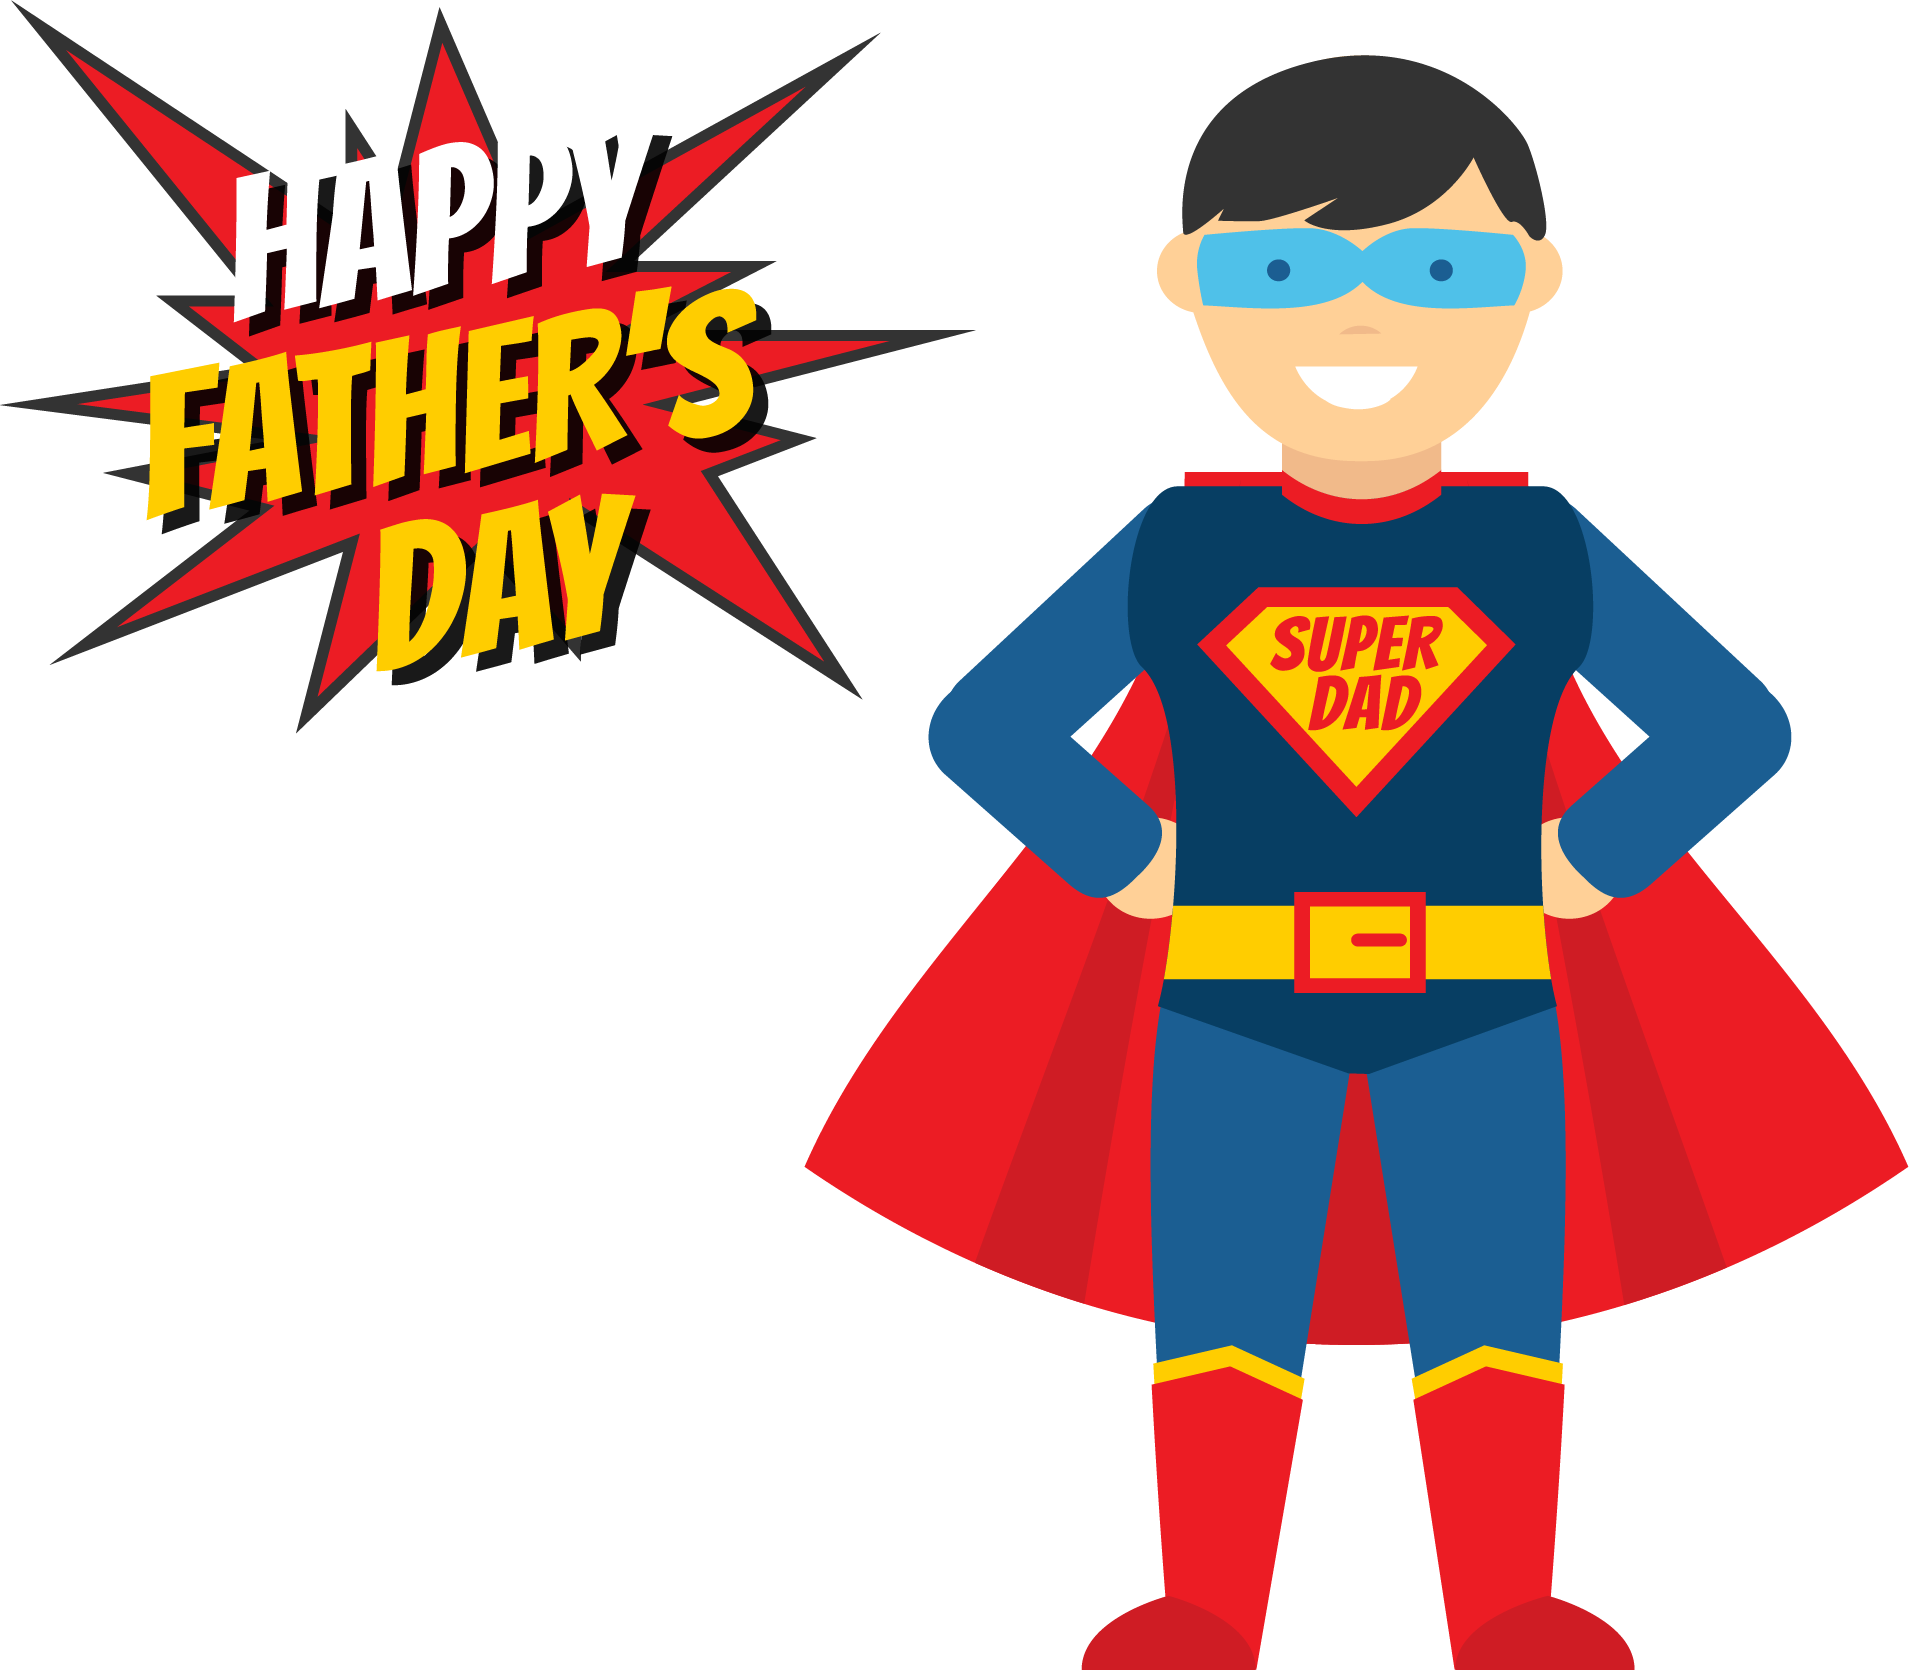 Fathers day illustration my. Costume clipart superhero dad